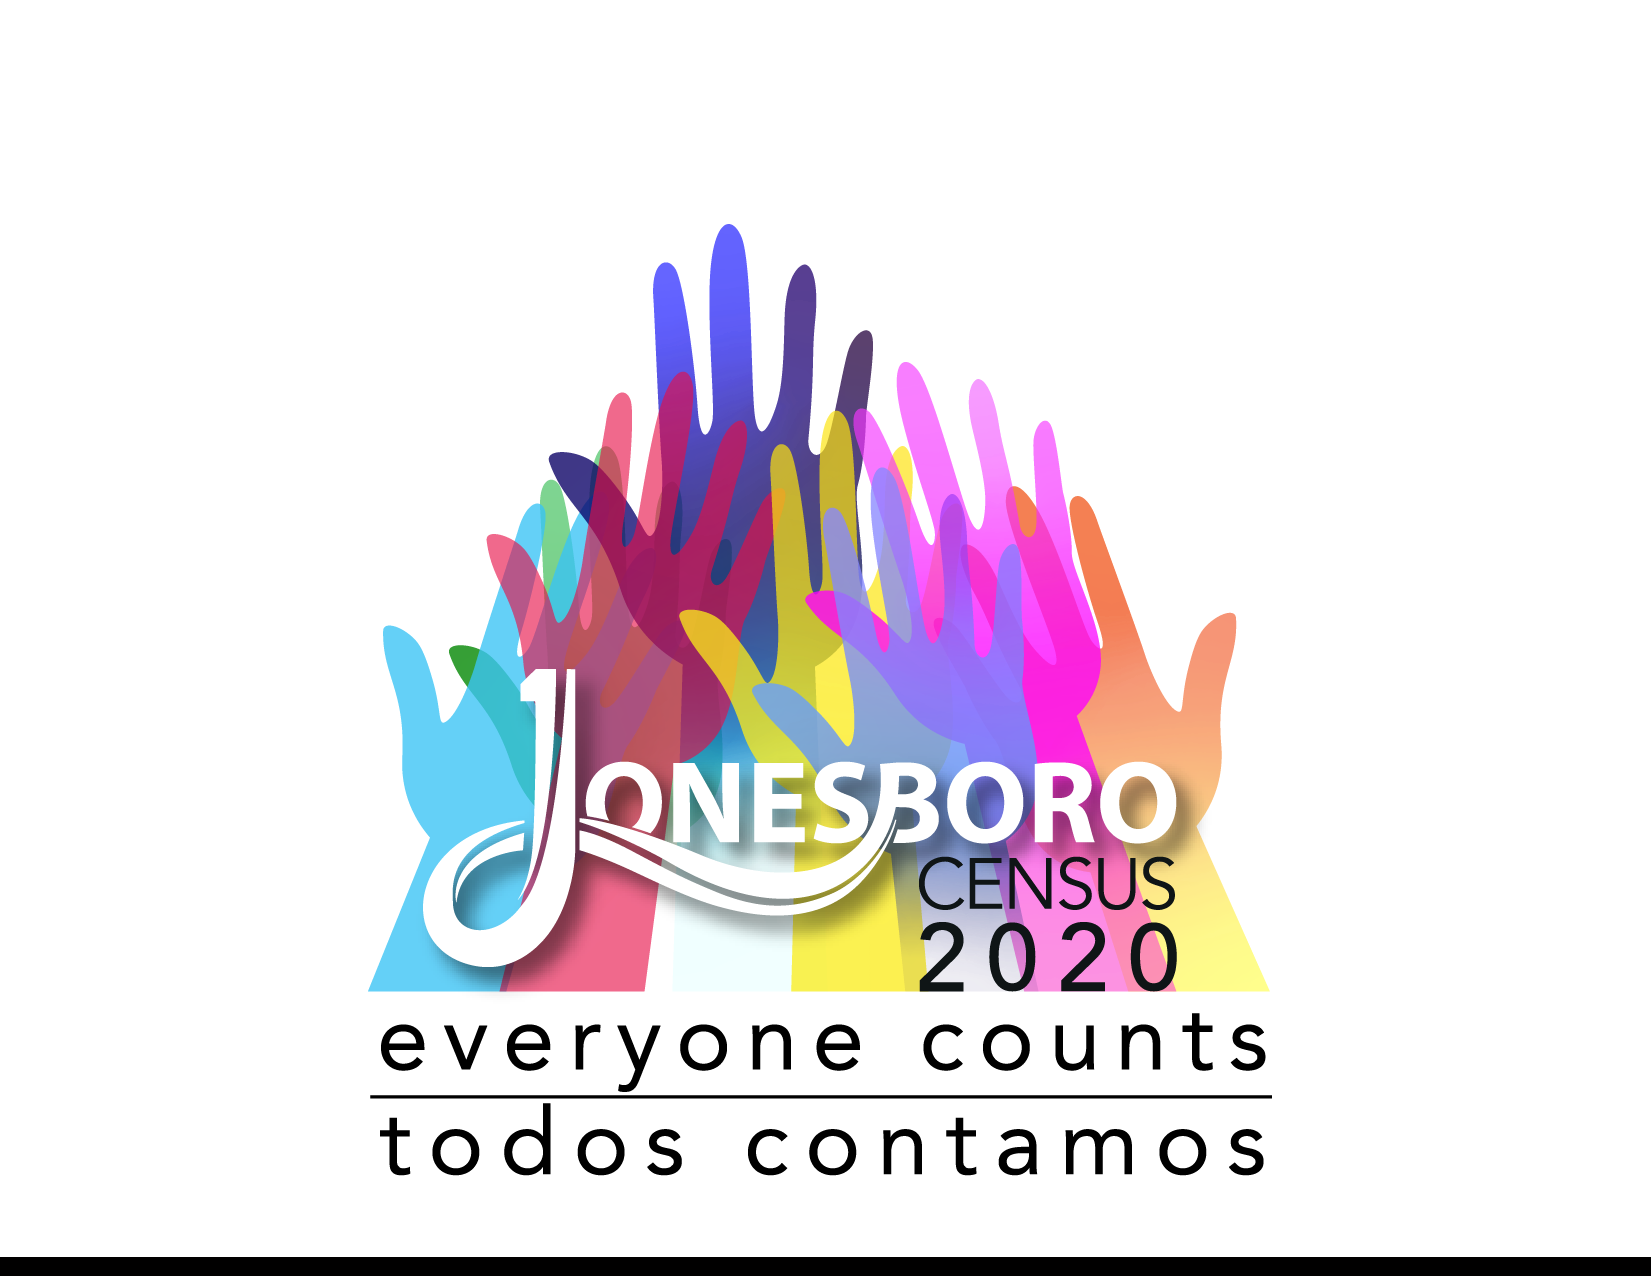 2020 Census Logo for Jonesboro that reads Everyone Counts